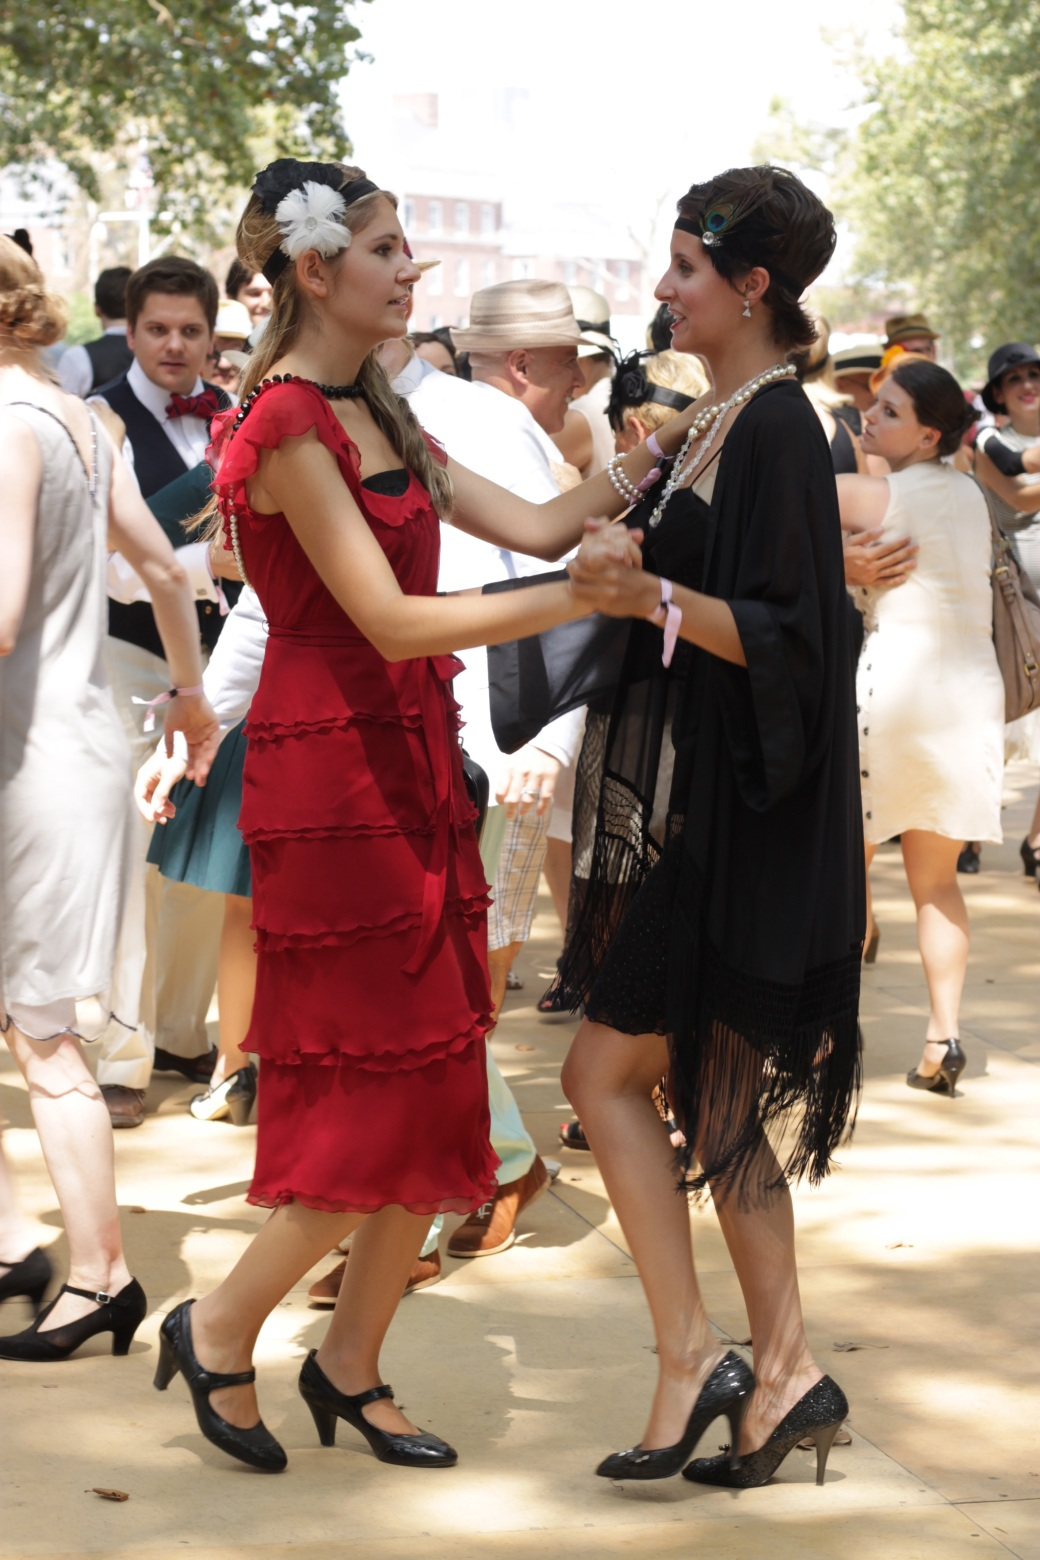 new york city governors island jazz age lawn party august 17 2014 52